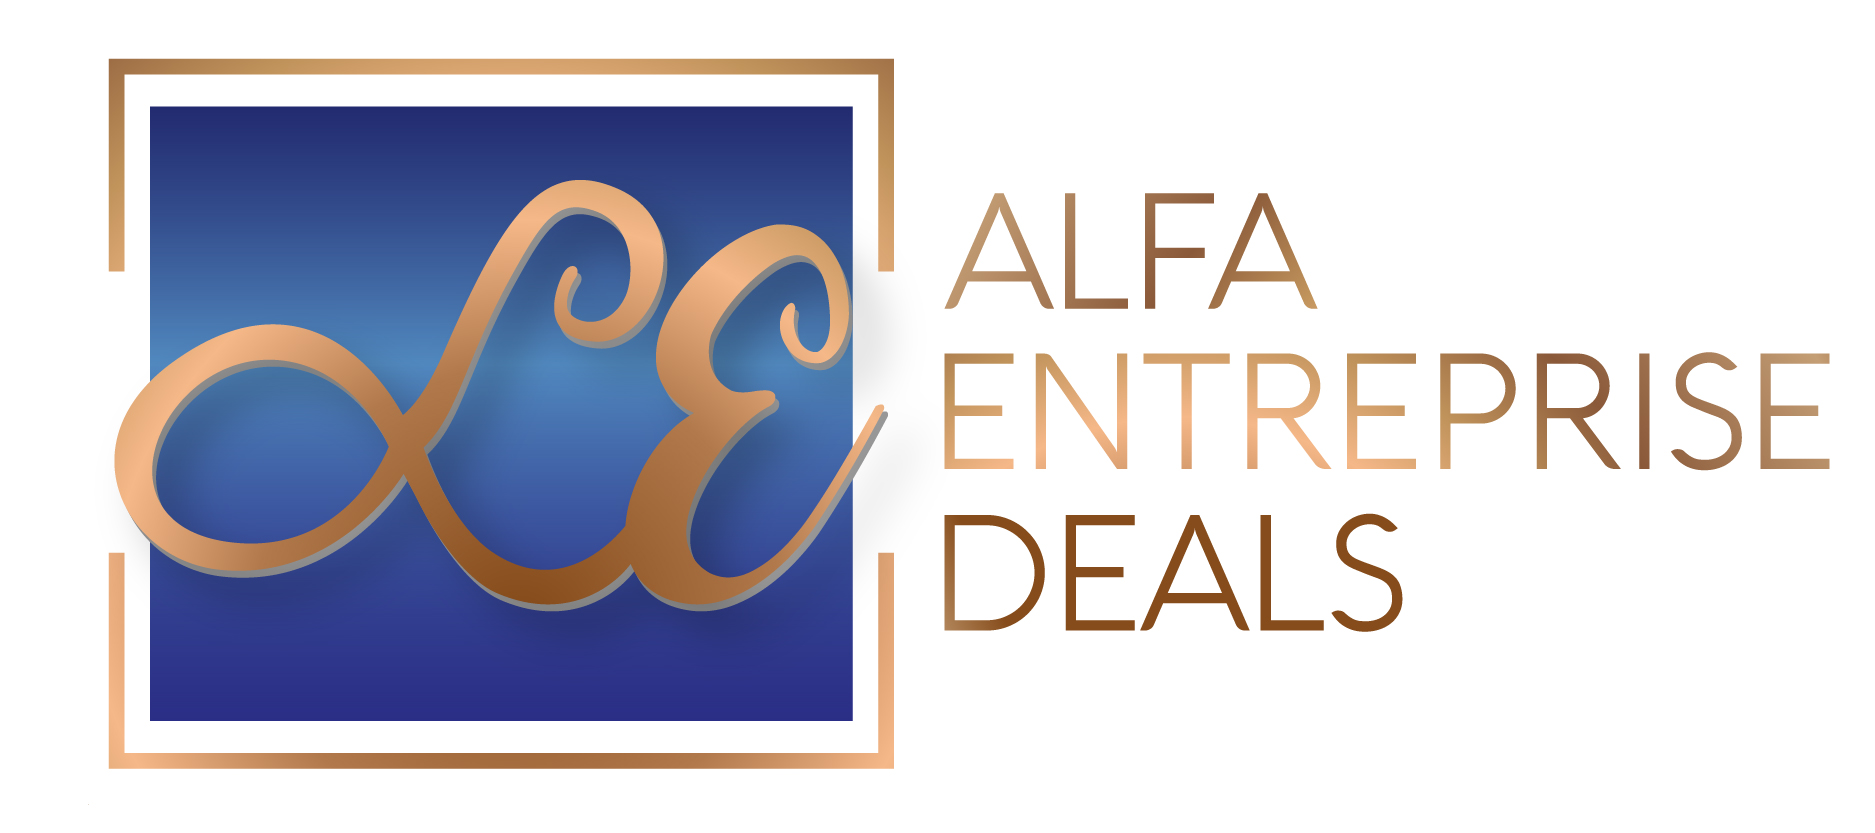 Alfa Enterprise Deals